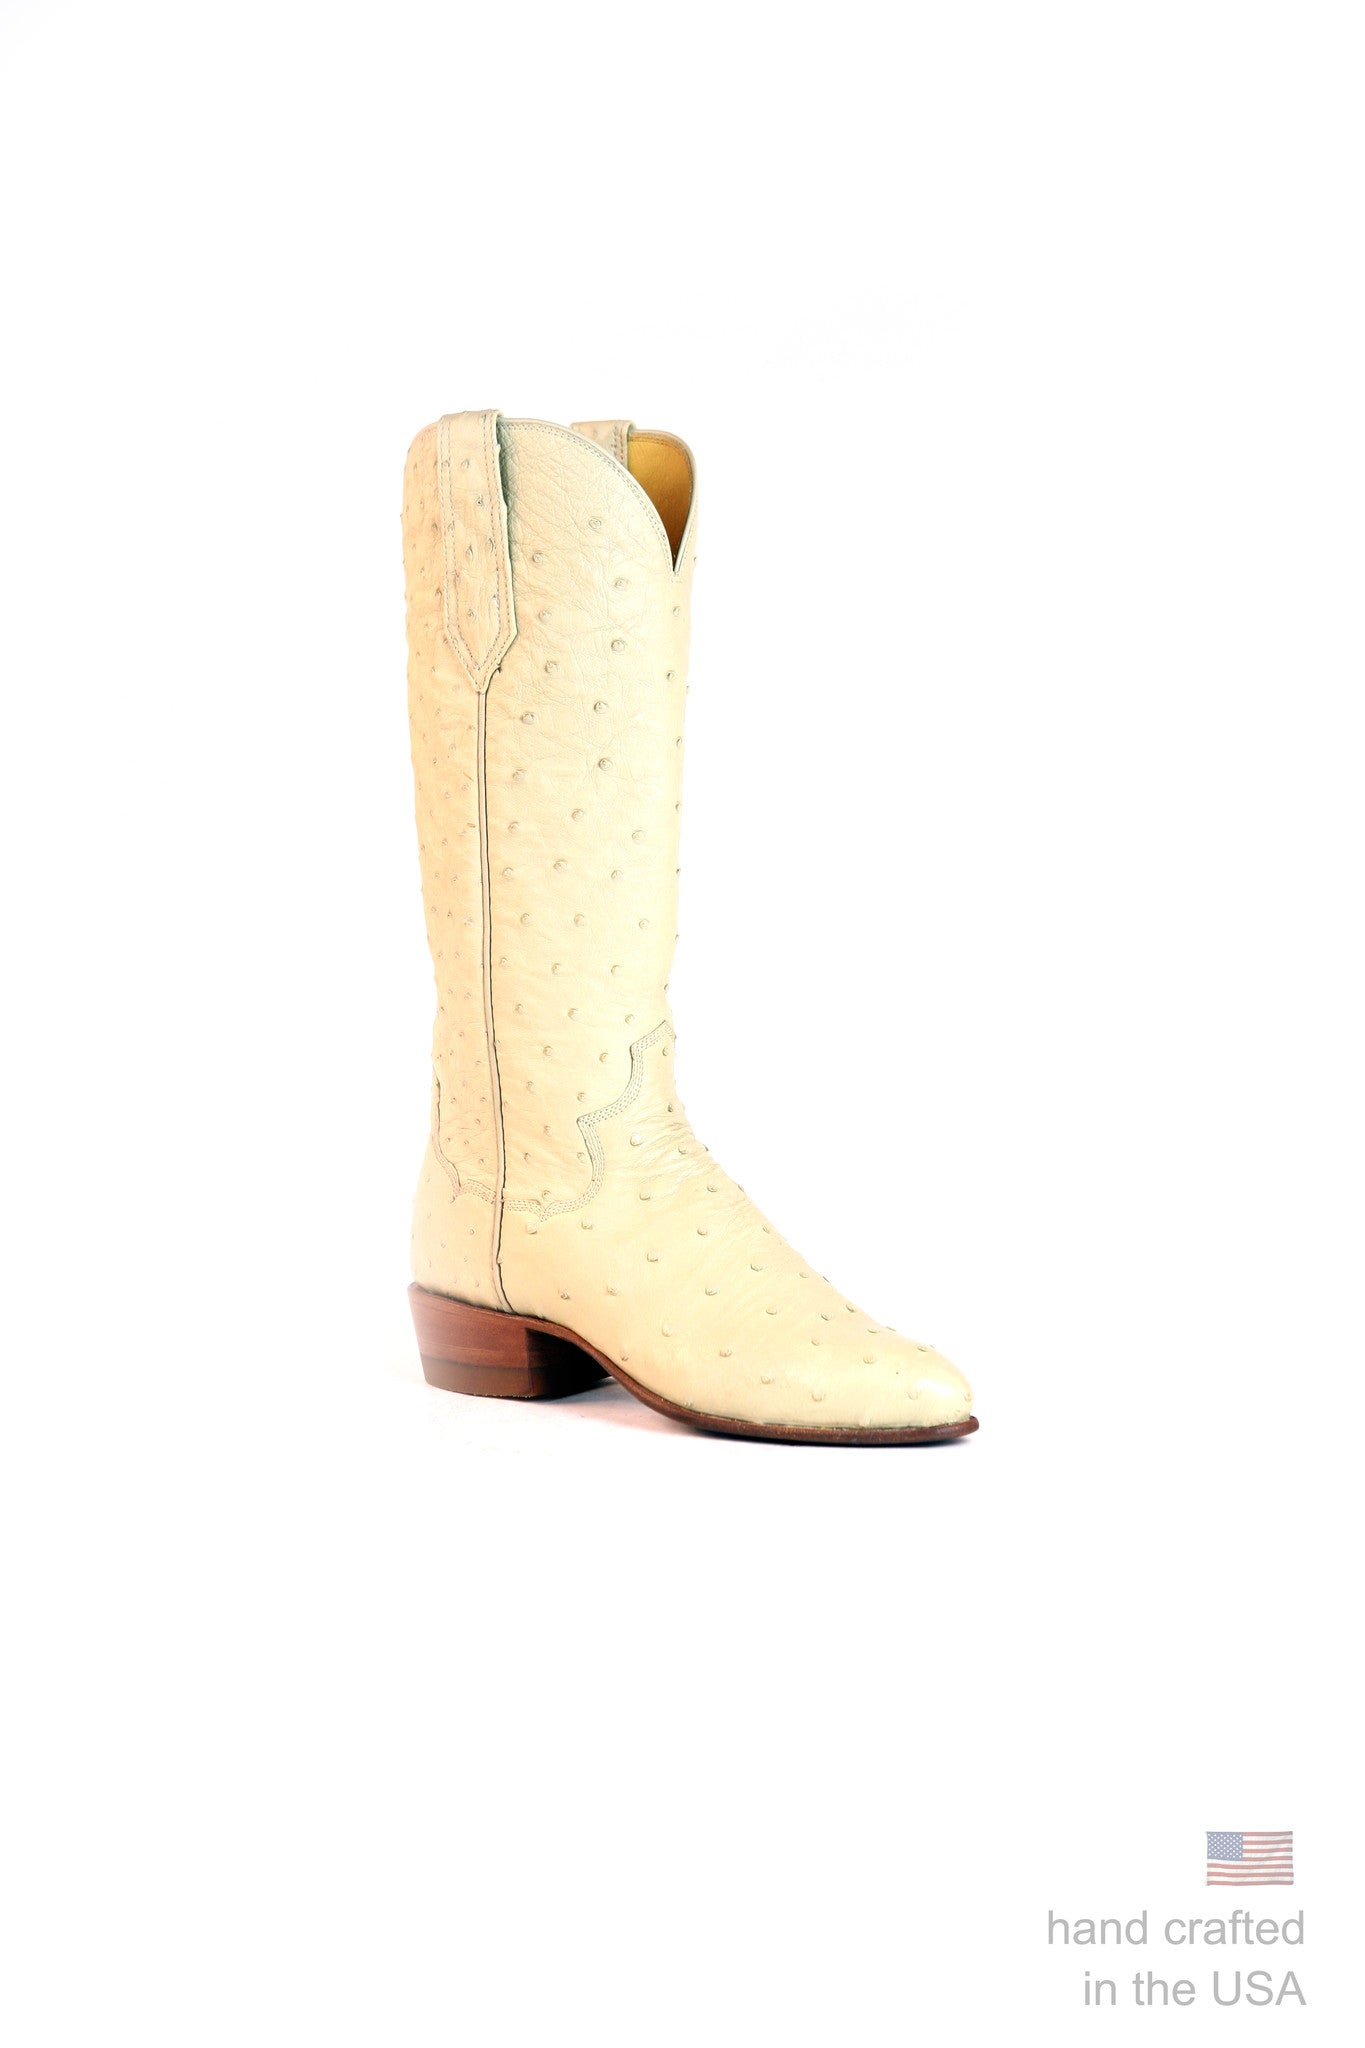 Singles: Boot 0069: Size 5.5 A